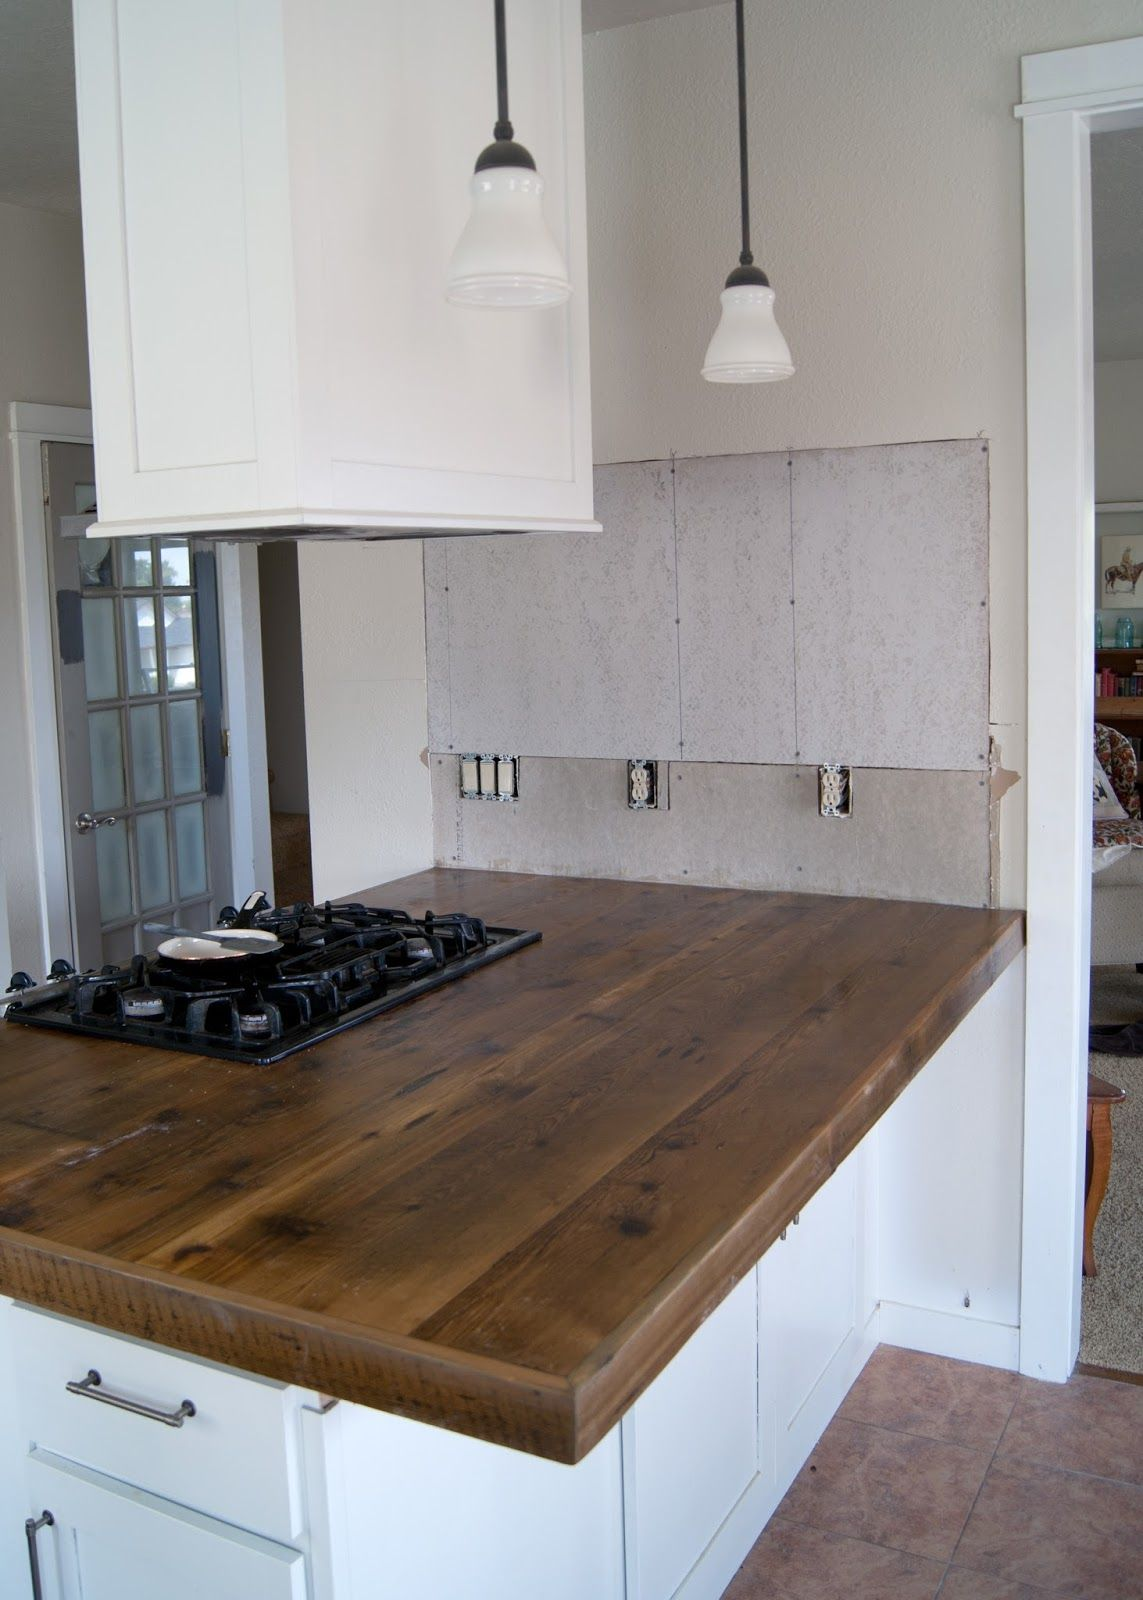 Diy Reclaimed Wood Countertop Countertops I Am And Cabinets